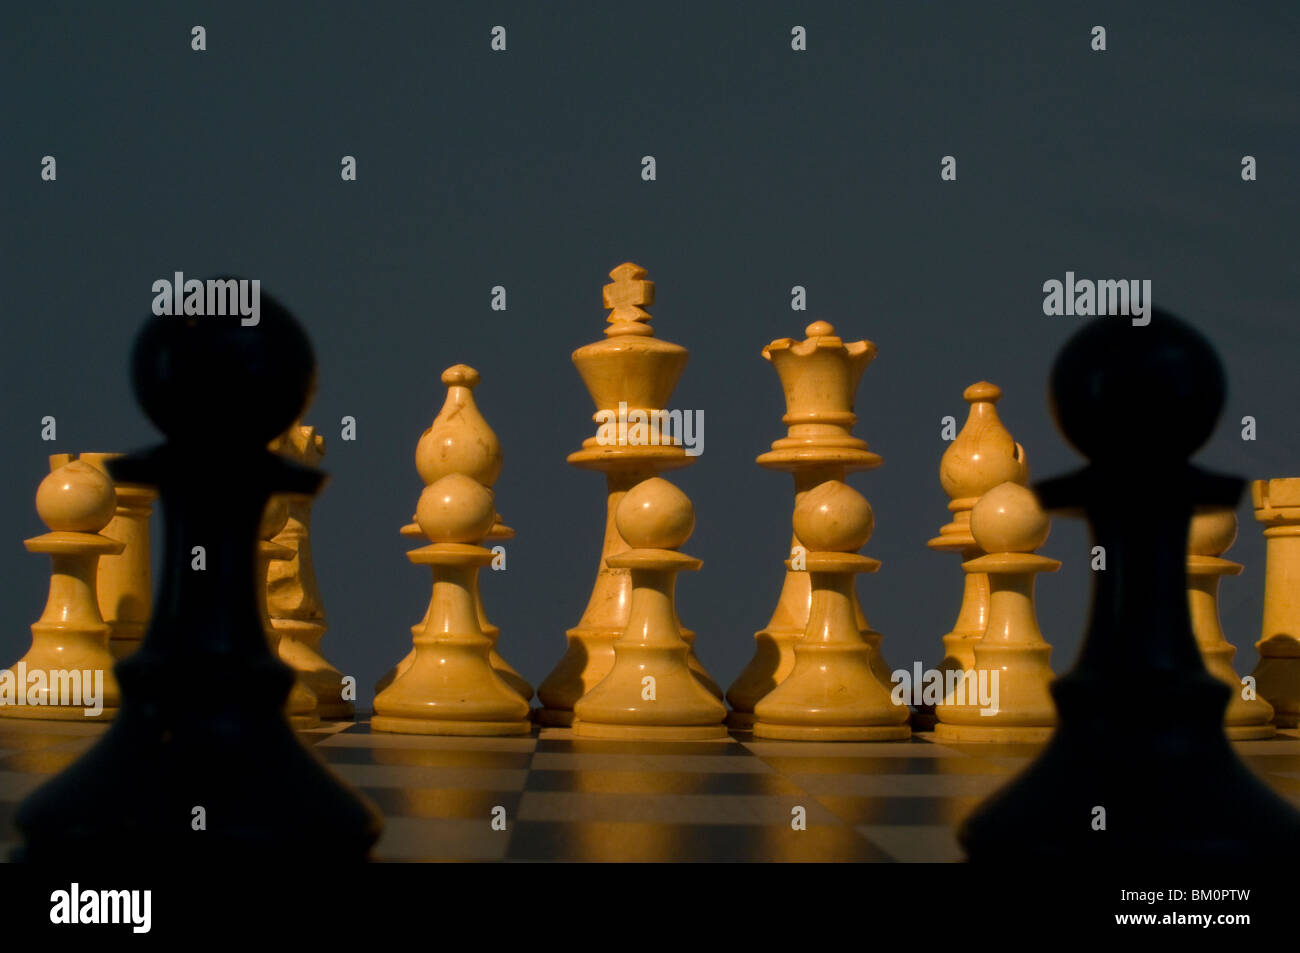 Chess. Two black pawns silhouetted in front of white chess pieces on chess board - Stock Image